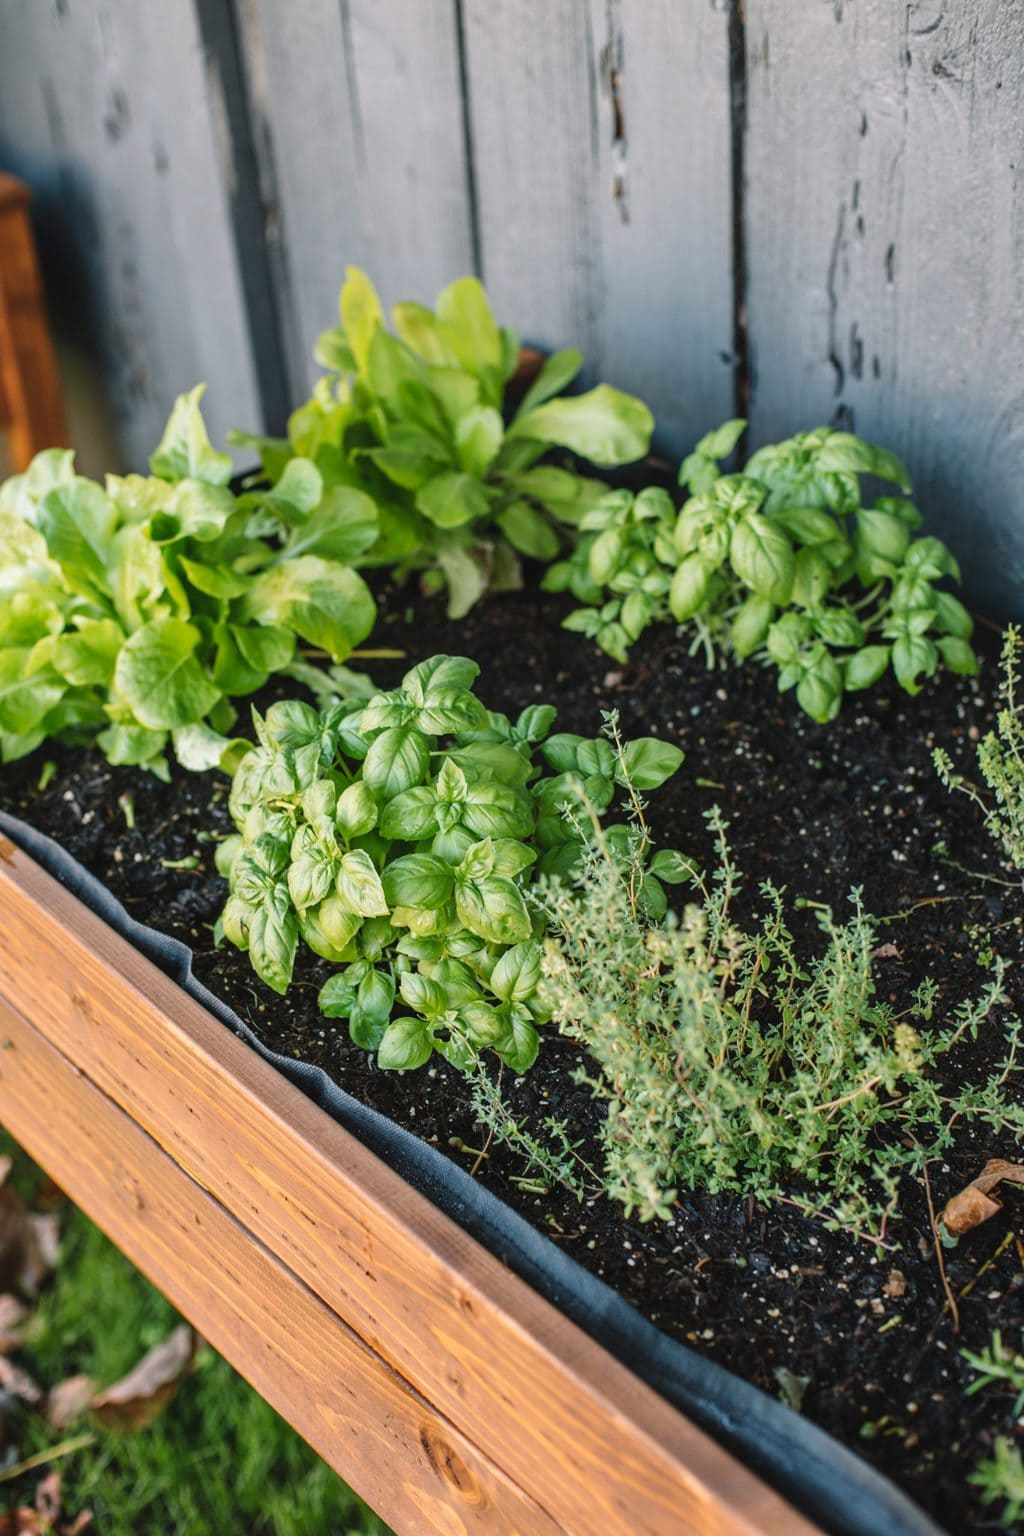 Lettuce, basil and thyme planted in an upright planter.